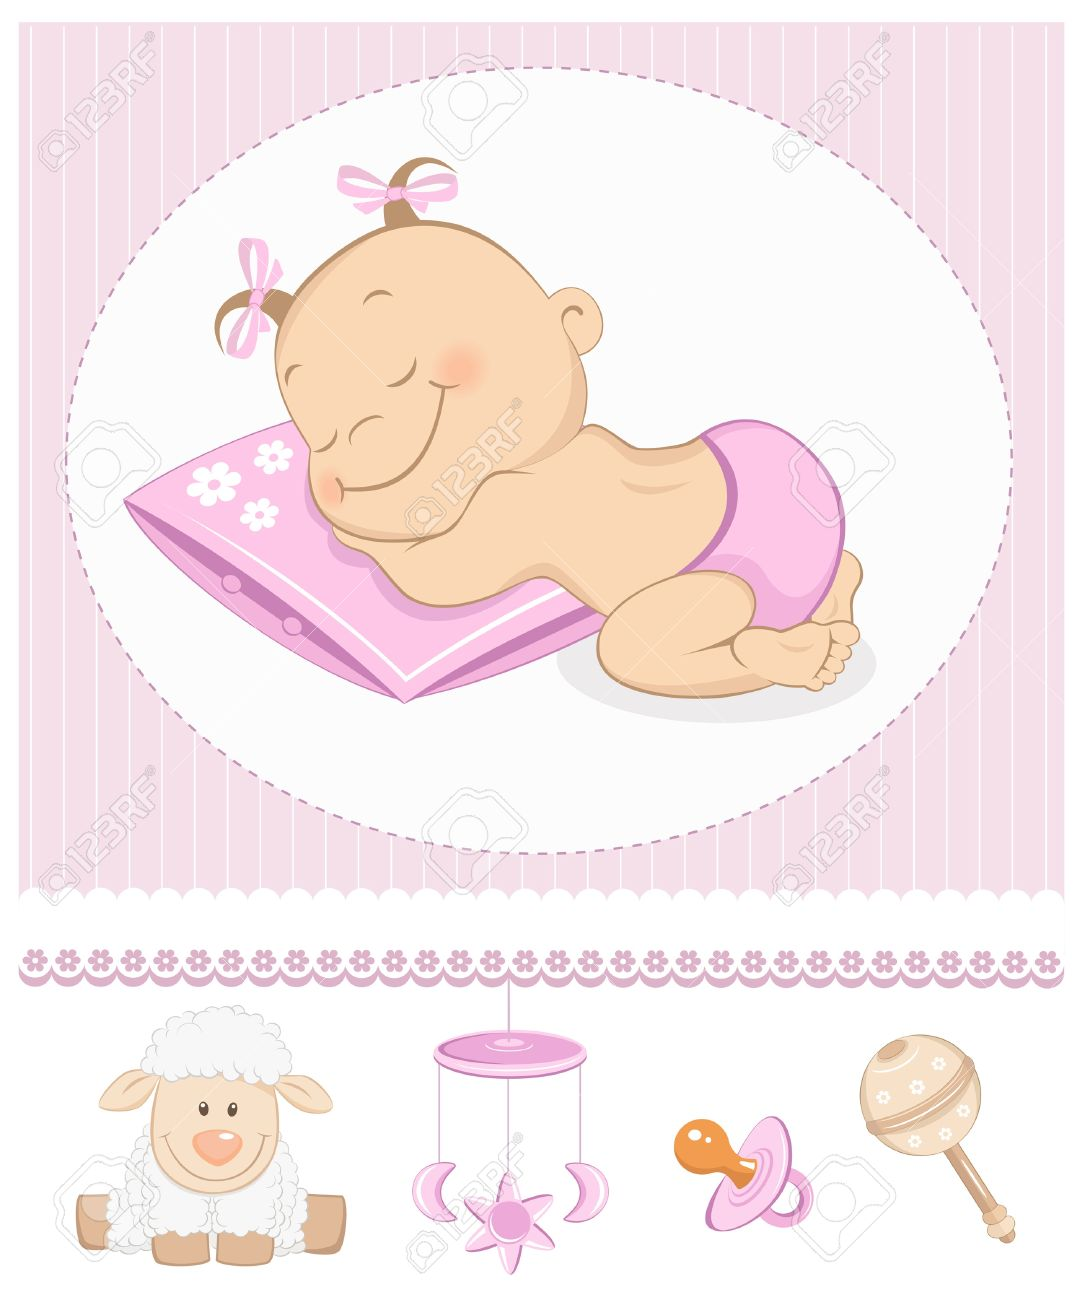 Baby girl clipart sleeping clip Sleeping Sweet Girl Arrival Announcement. Photo Frame With Baby ... clip